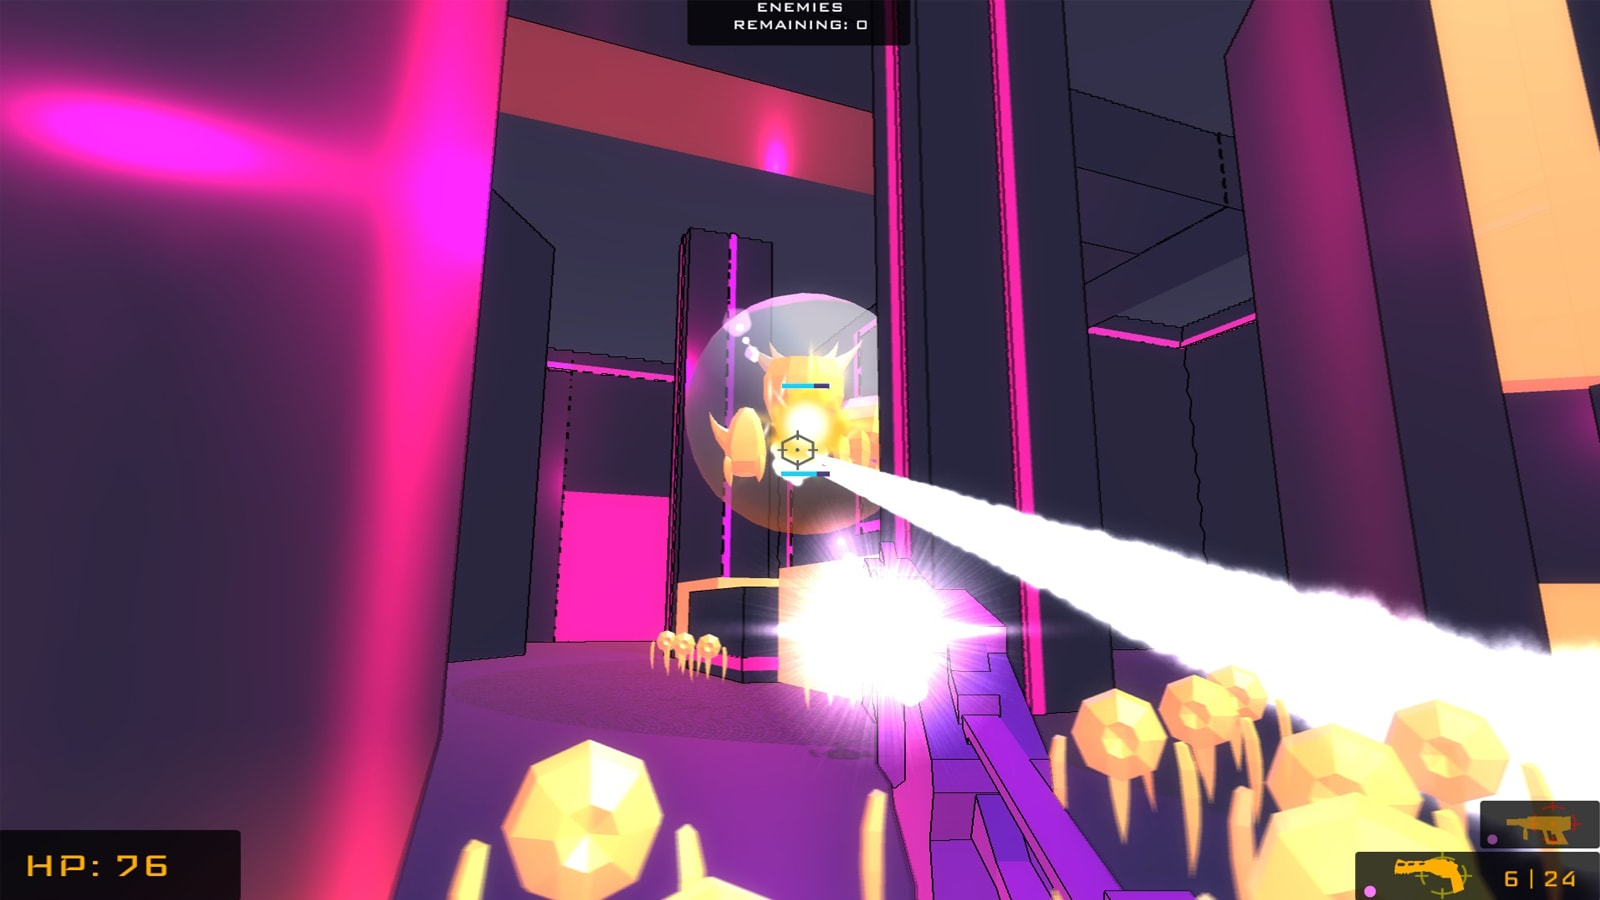 An anti-virus in a bubble shield shoots a glowing beam at the player, who fires back with a pink gun.